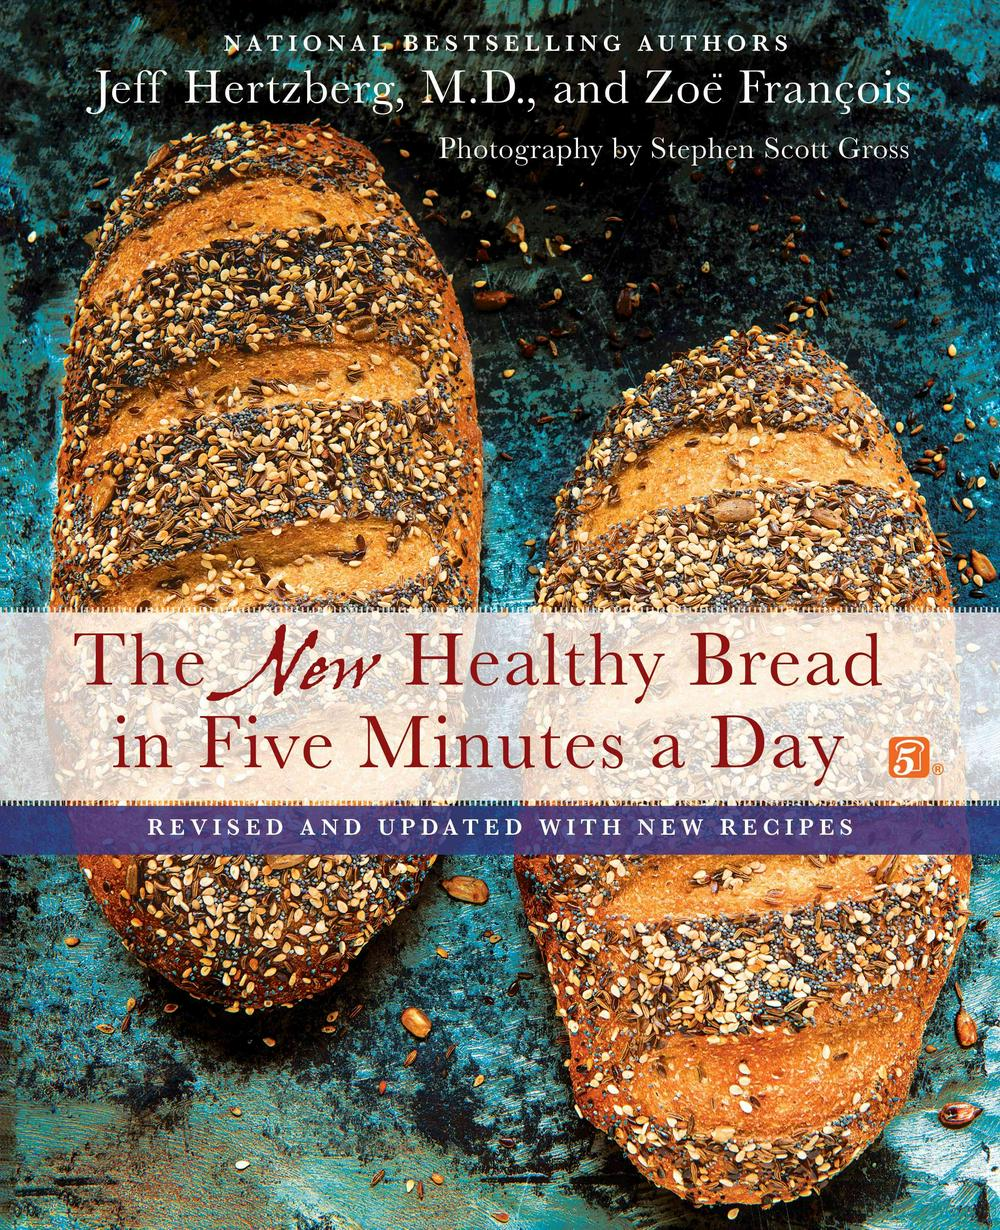 New Healthy Bread in Five Minutes a DayRevised and Updated with New Recipes